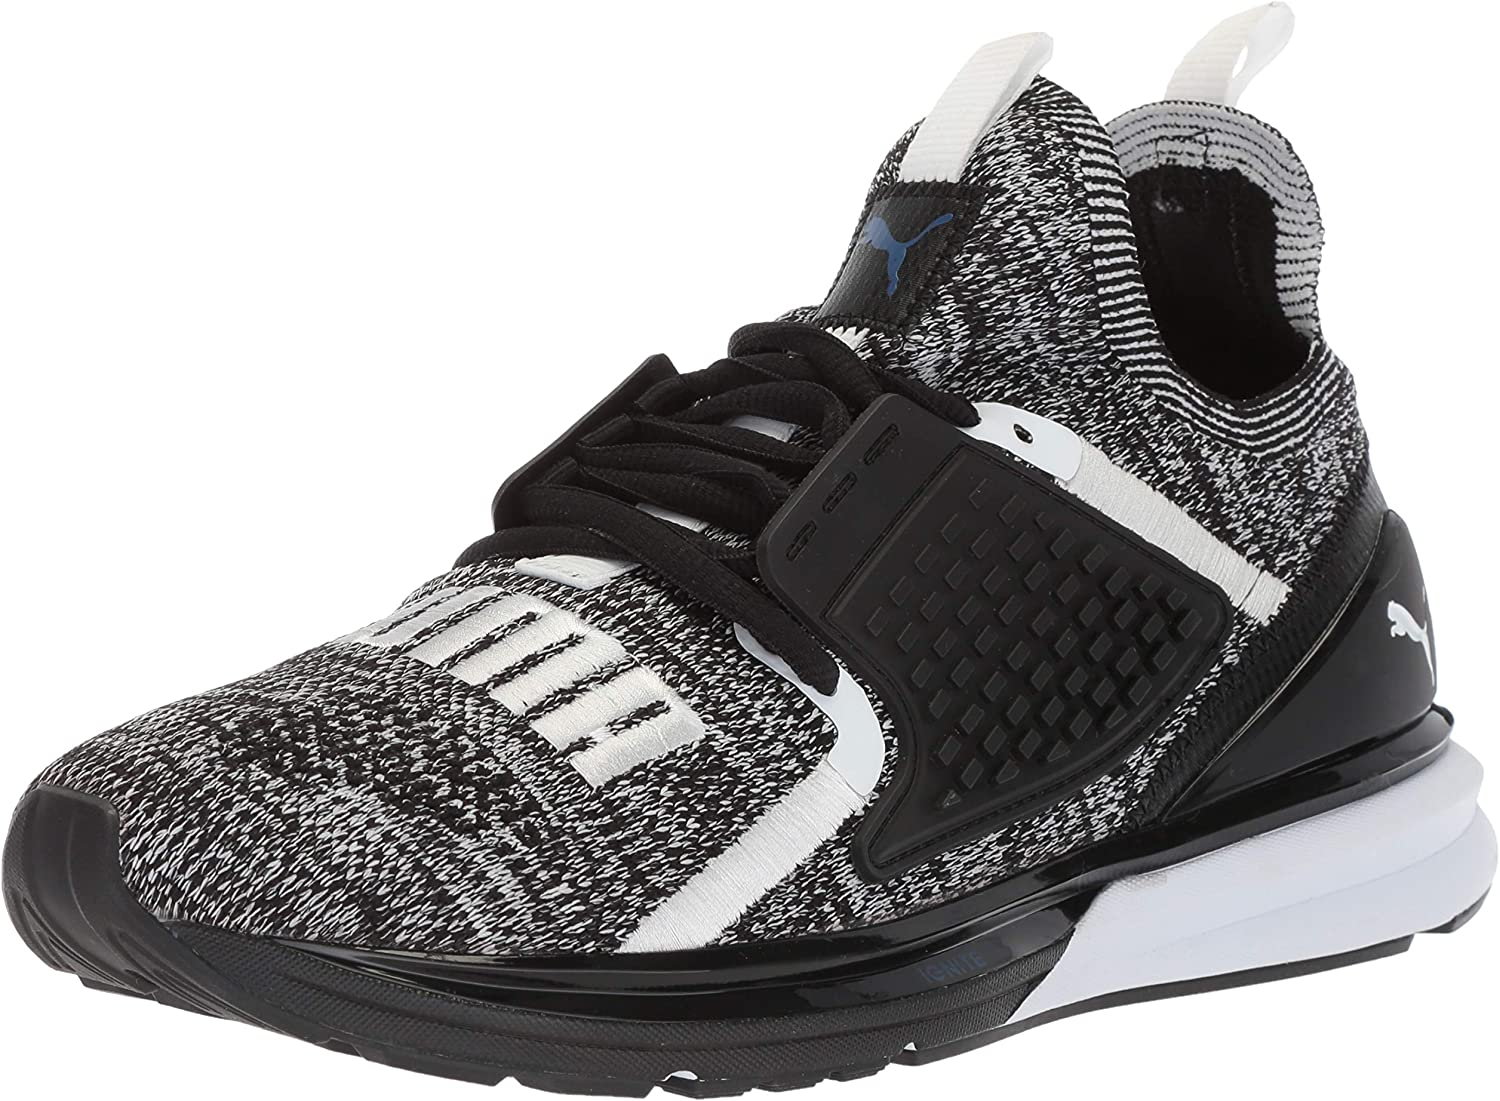 PUMA Men's Ignite Limitless 2 Evoknit High-Top Training Shoes